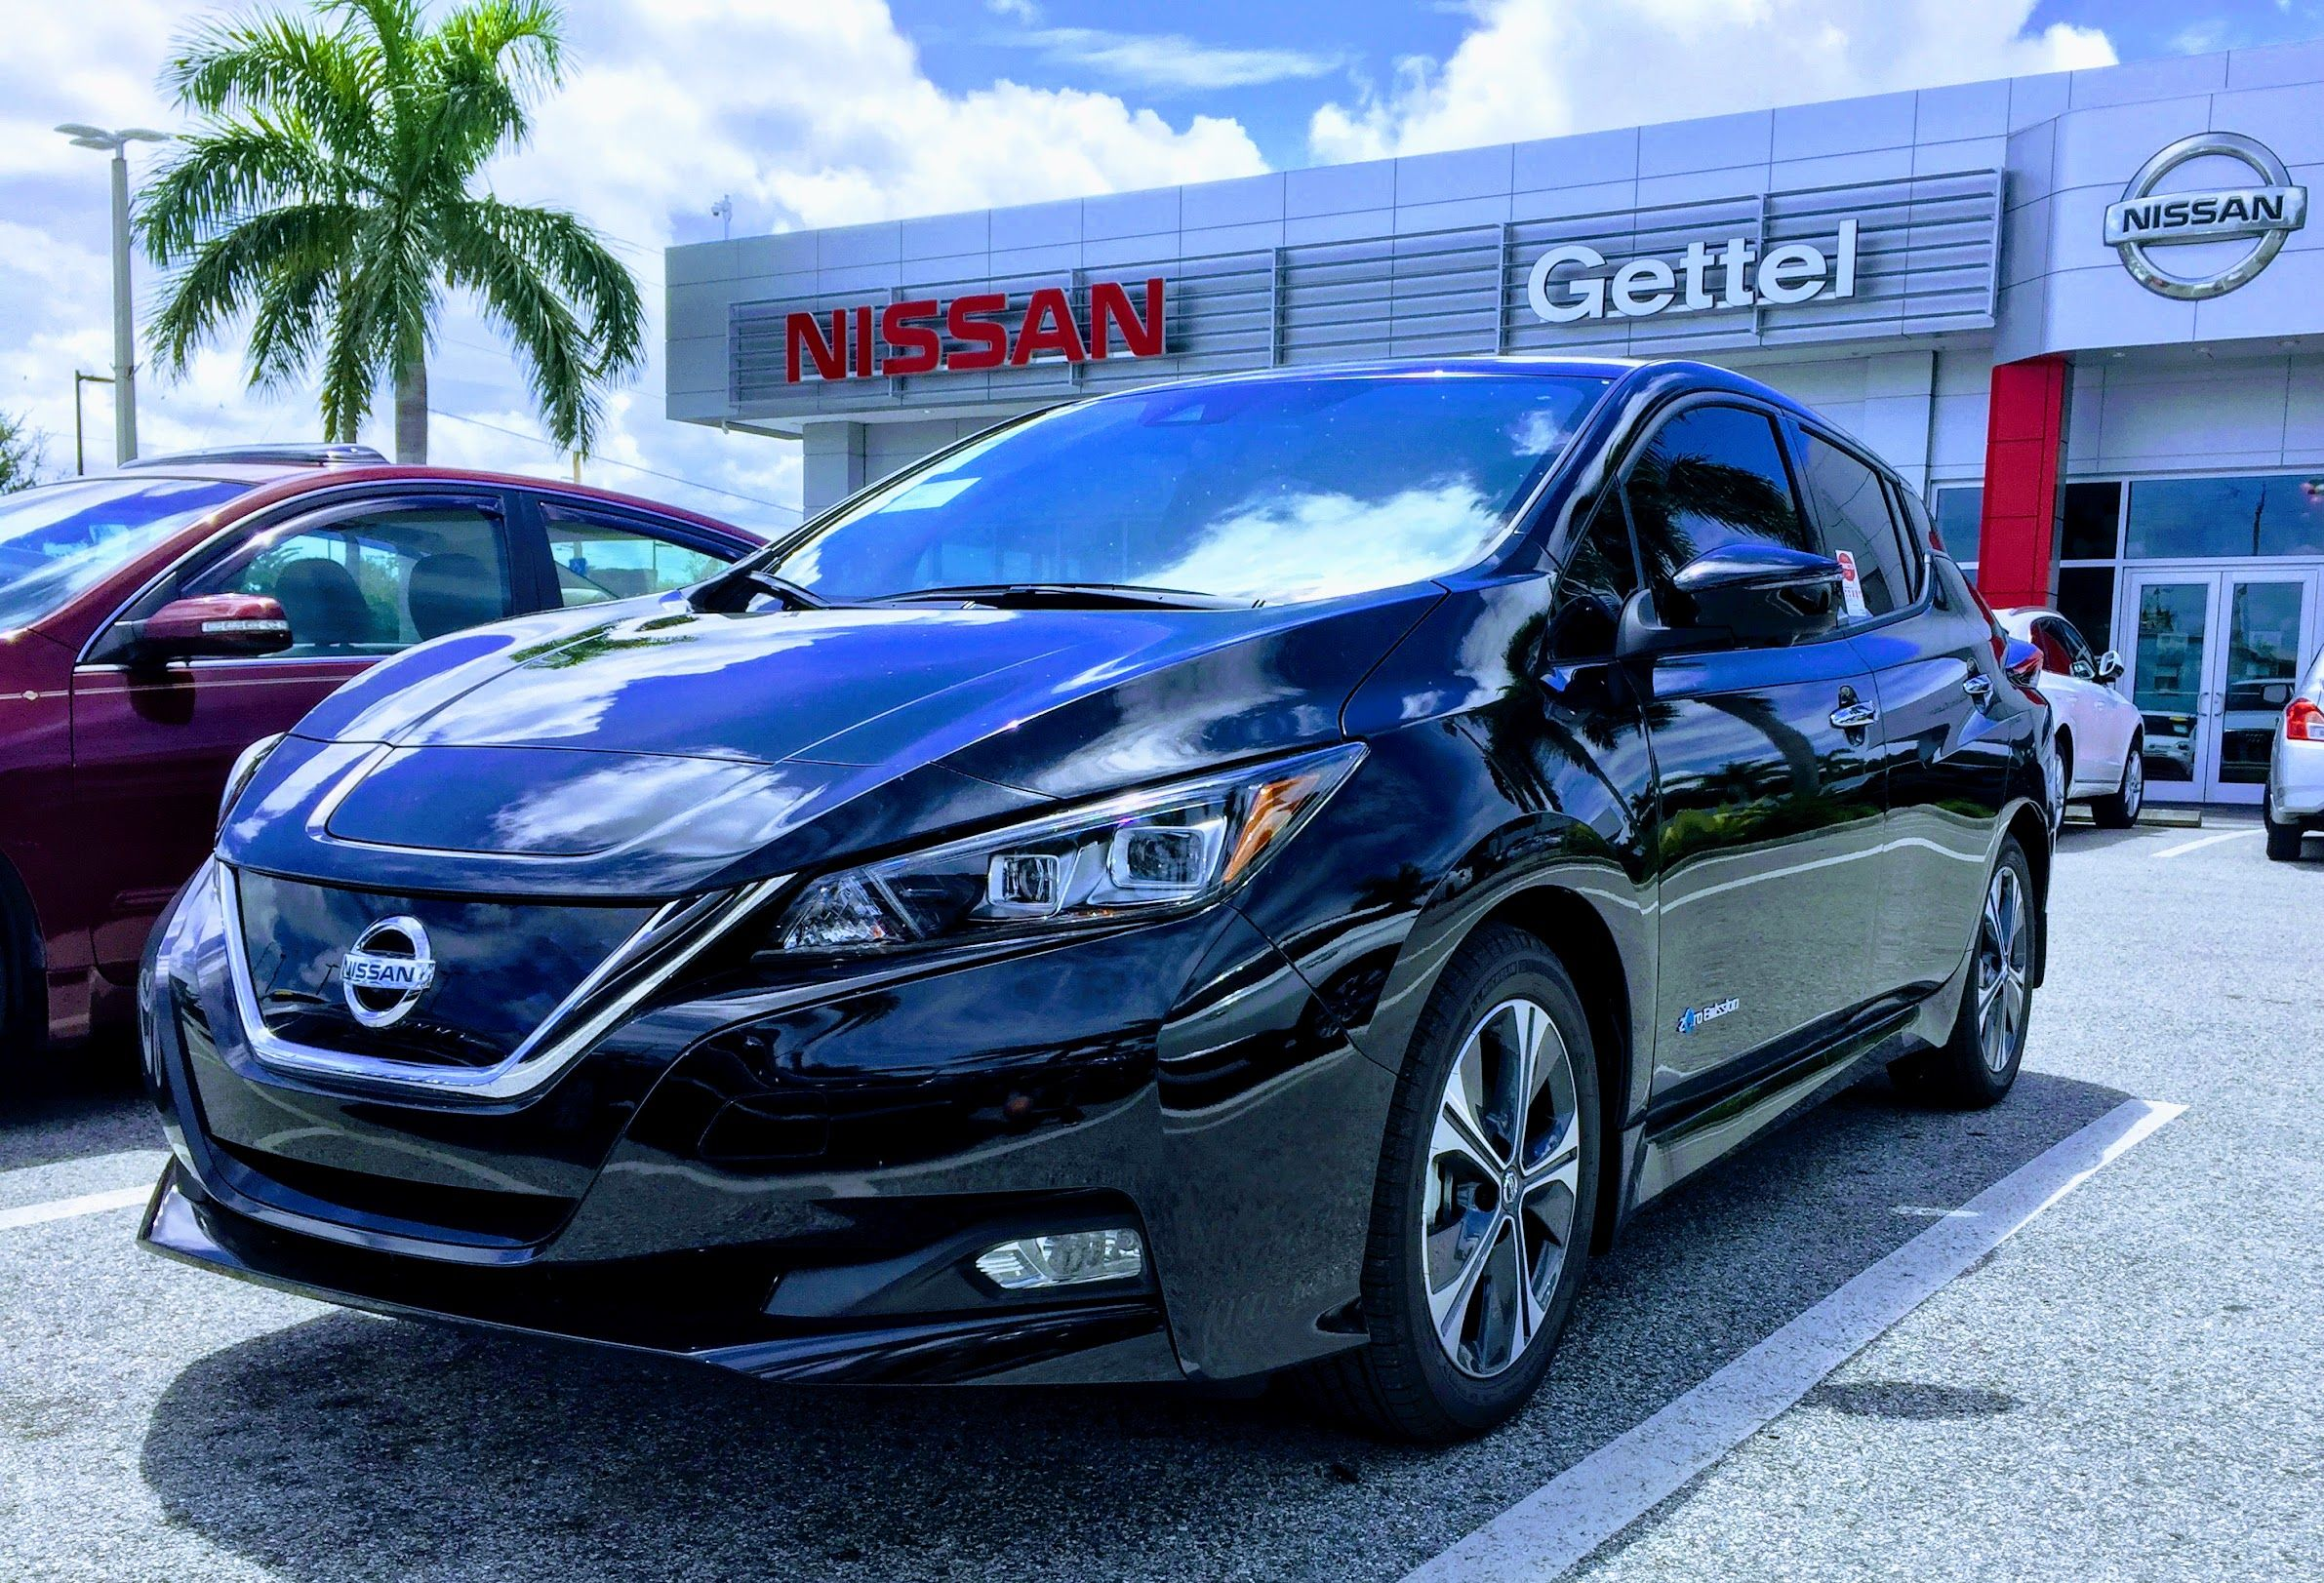 87 The 2019 Nissan Leaf Range For Price Ford Electric Car